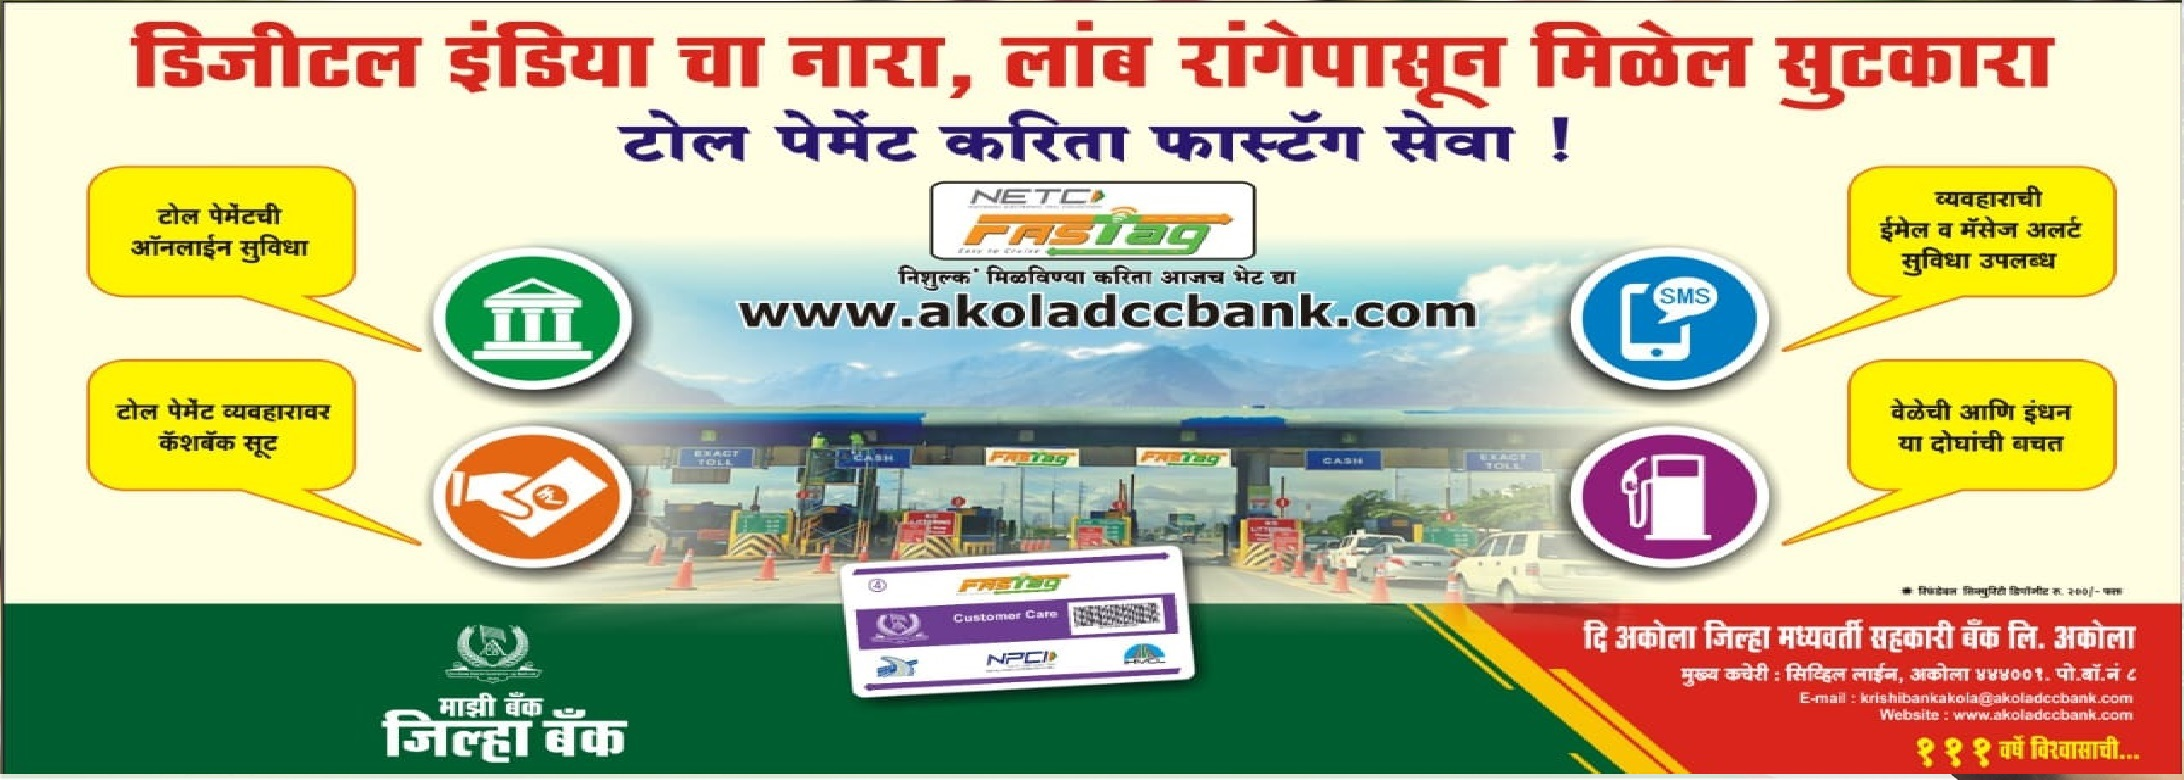 The Akola District Central Co-Op. Bank Ltd., Akola